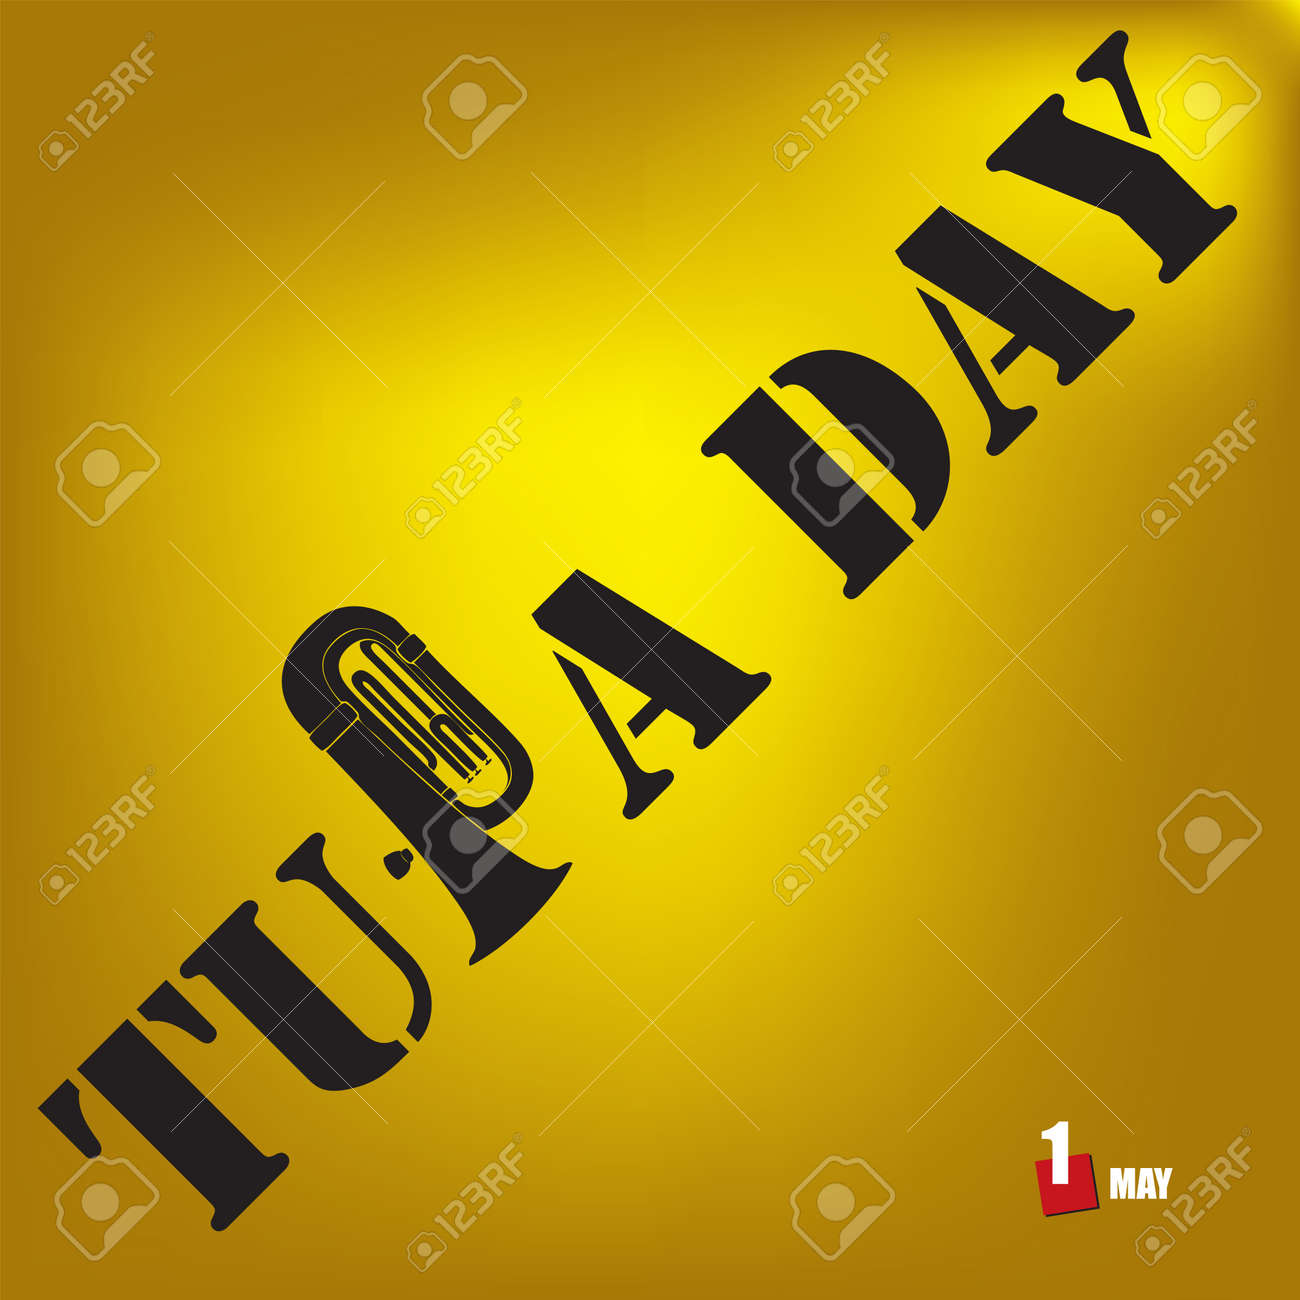 The calendar event is celebrated in april - Tuba Day - 168987675